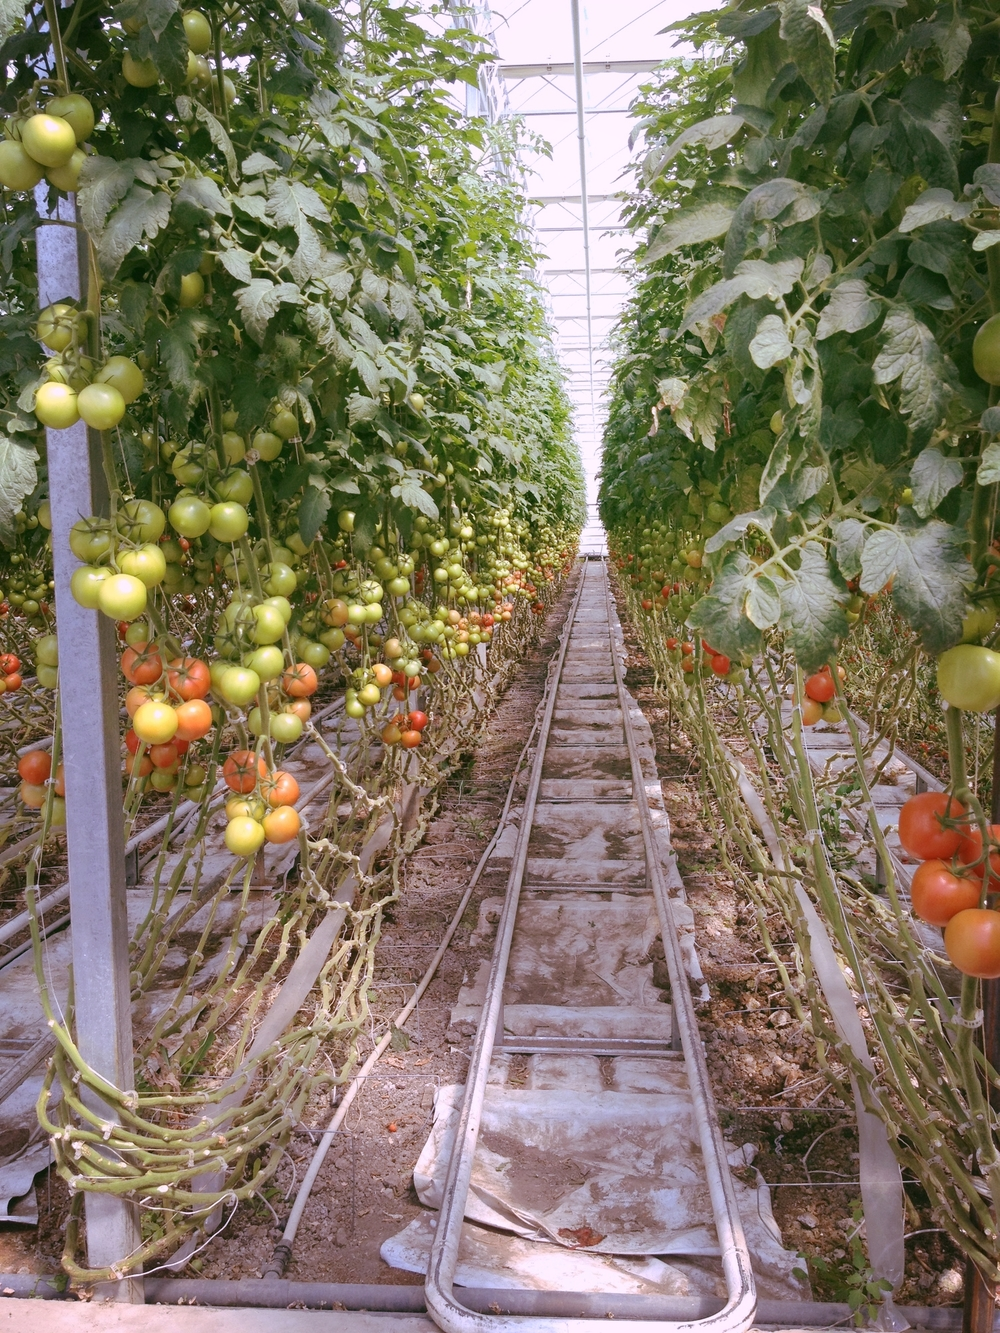 Some of the many tomatoes grown in the greenhouse at Mans Organics